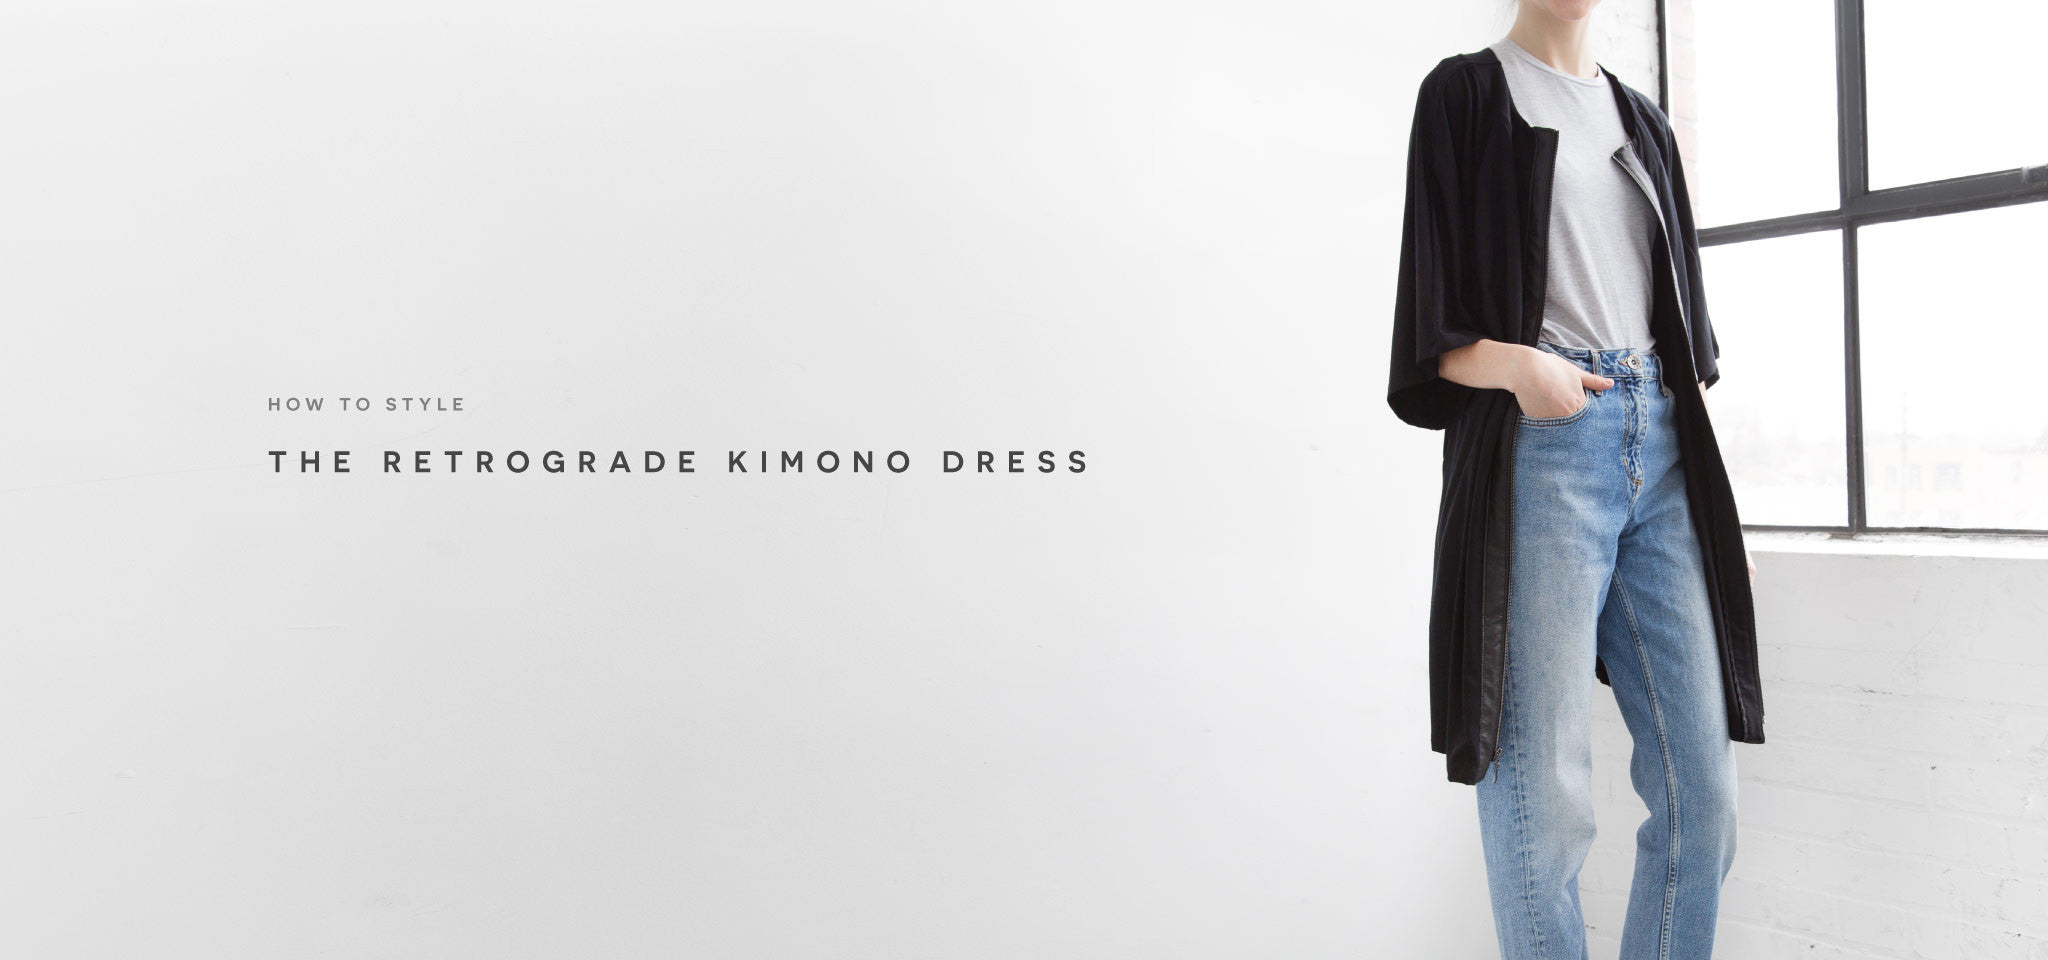 How to style the Retrograde Kimono Dress for a capsule wardrobe